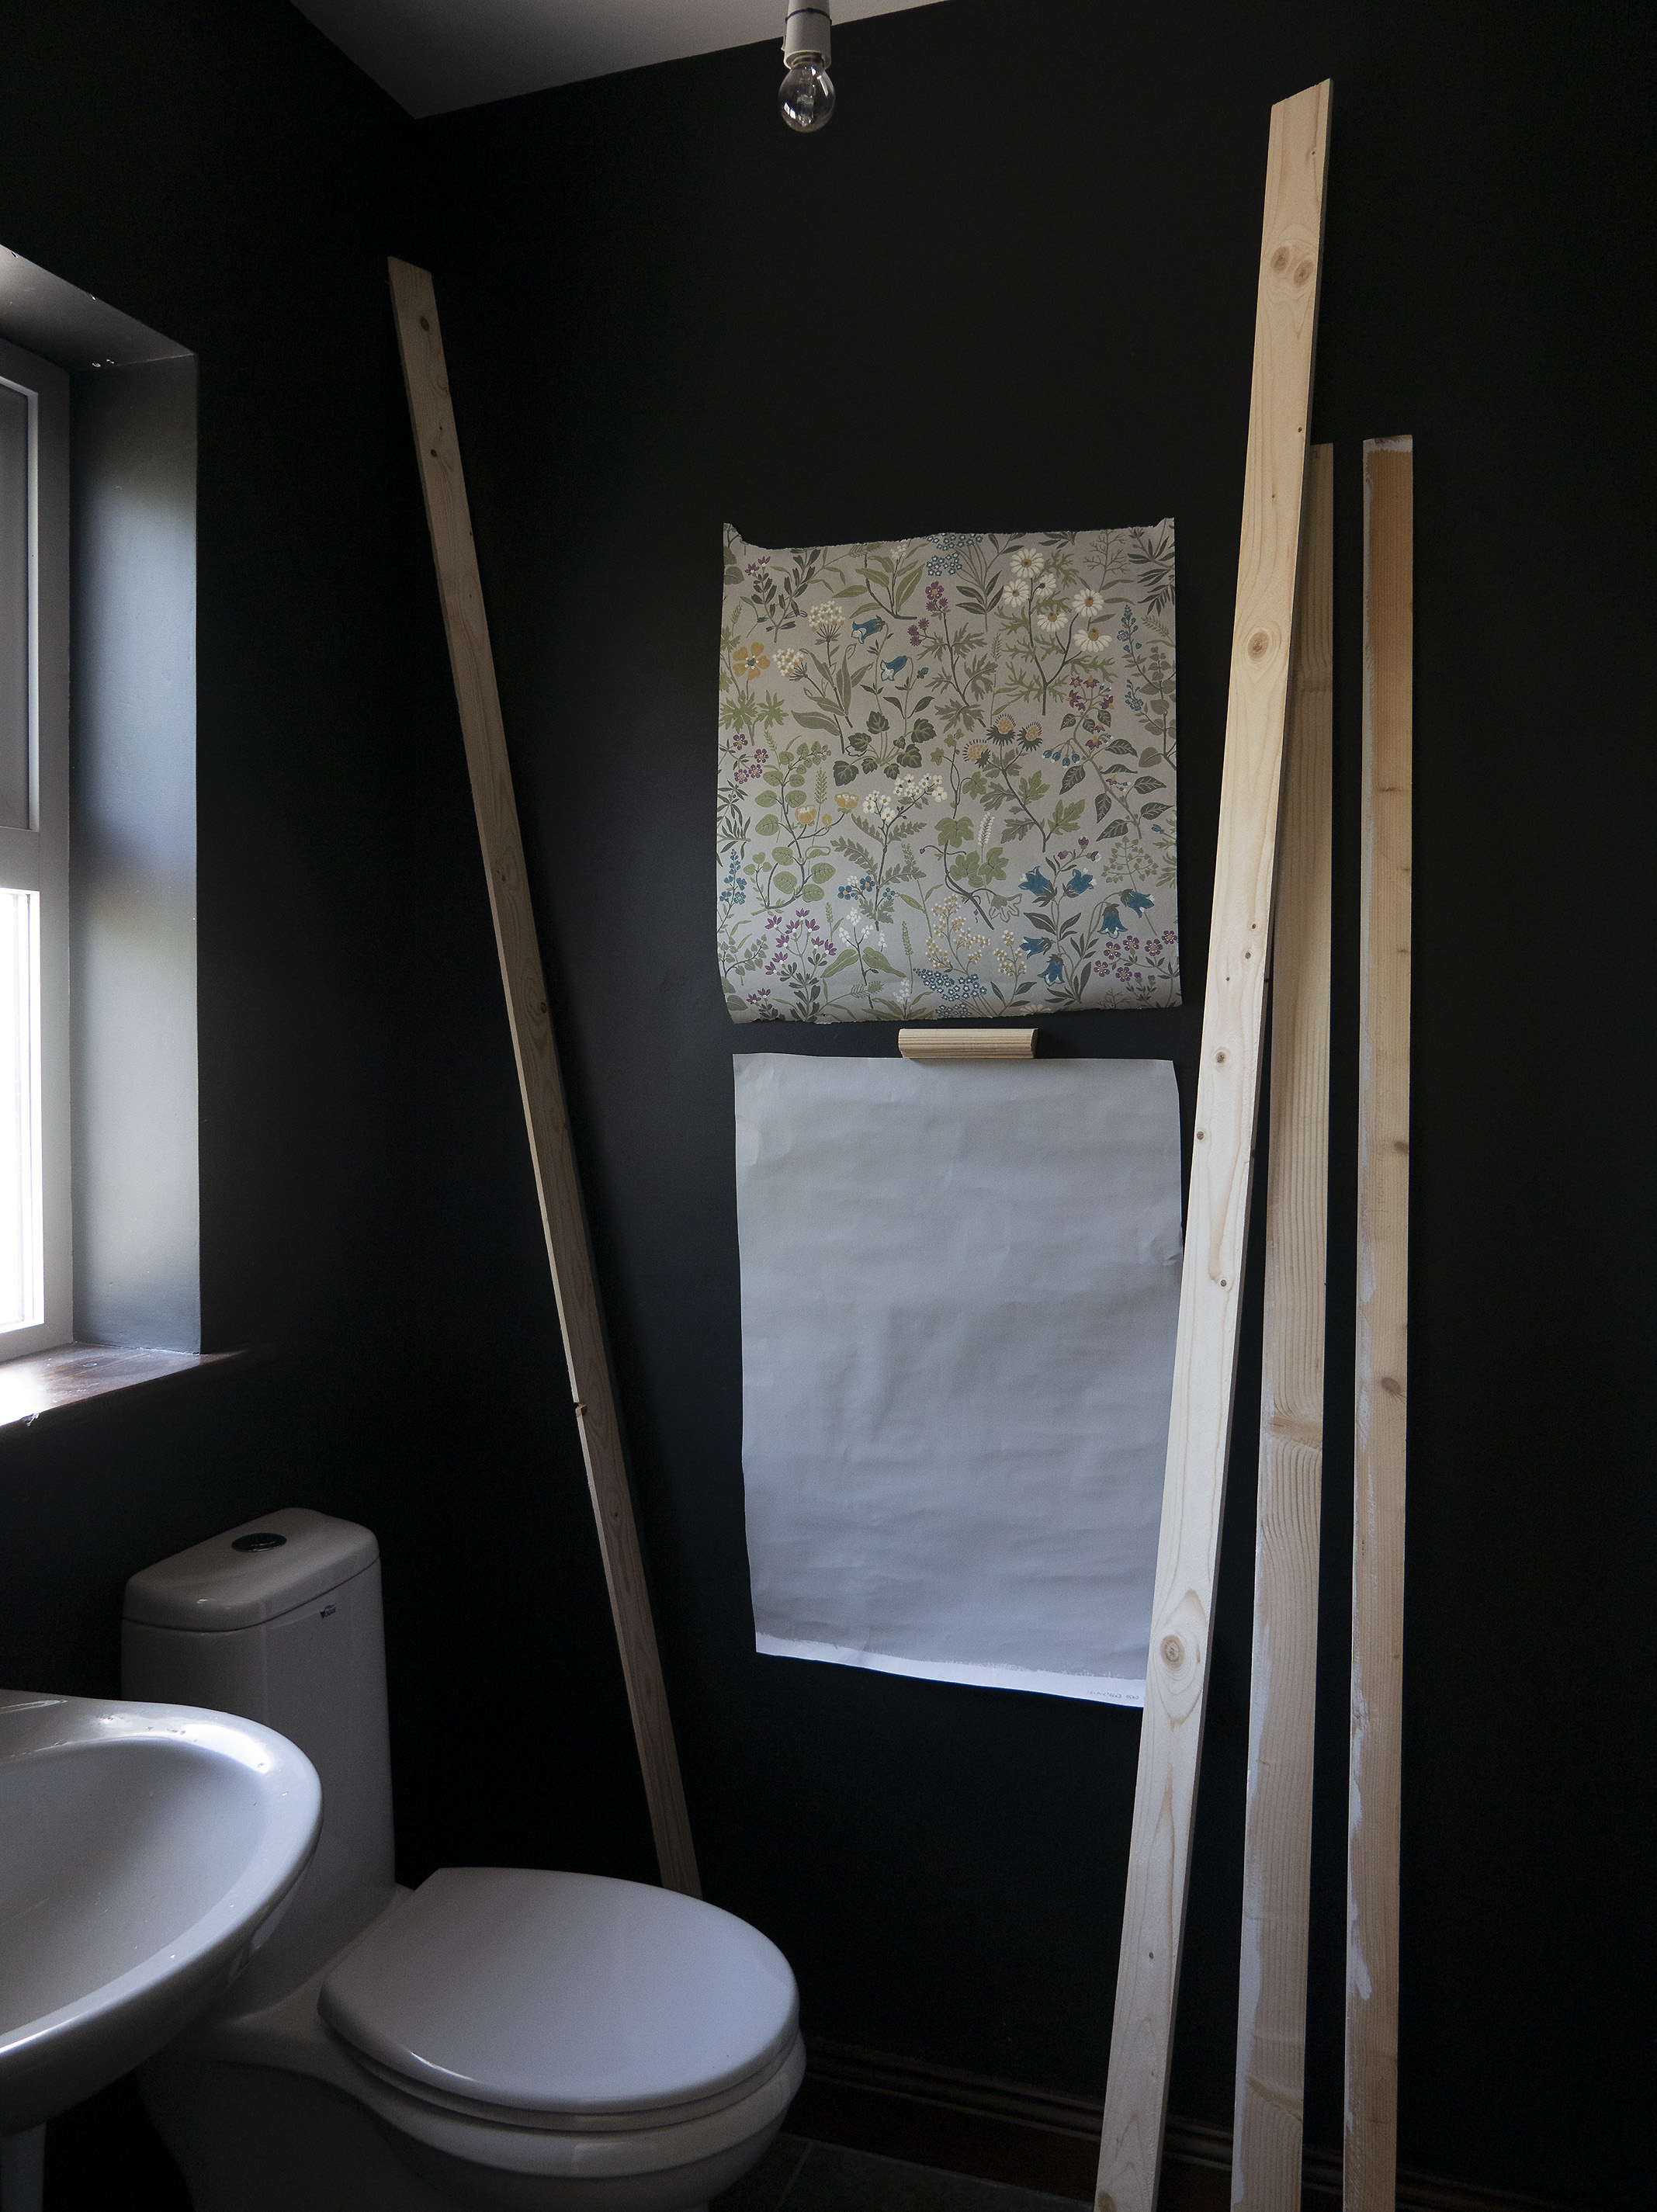 The House that Will | One Room Challenge, Downstairs Loo, Week 2 Progress